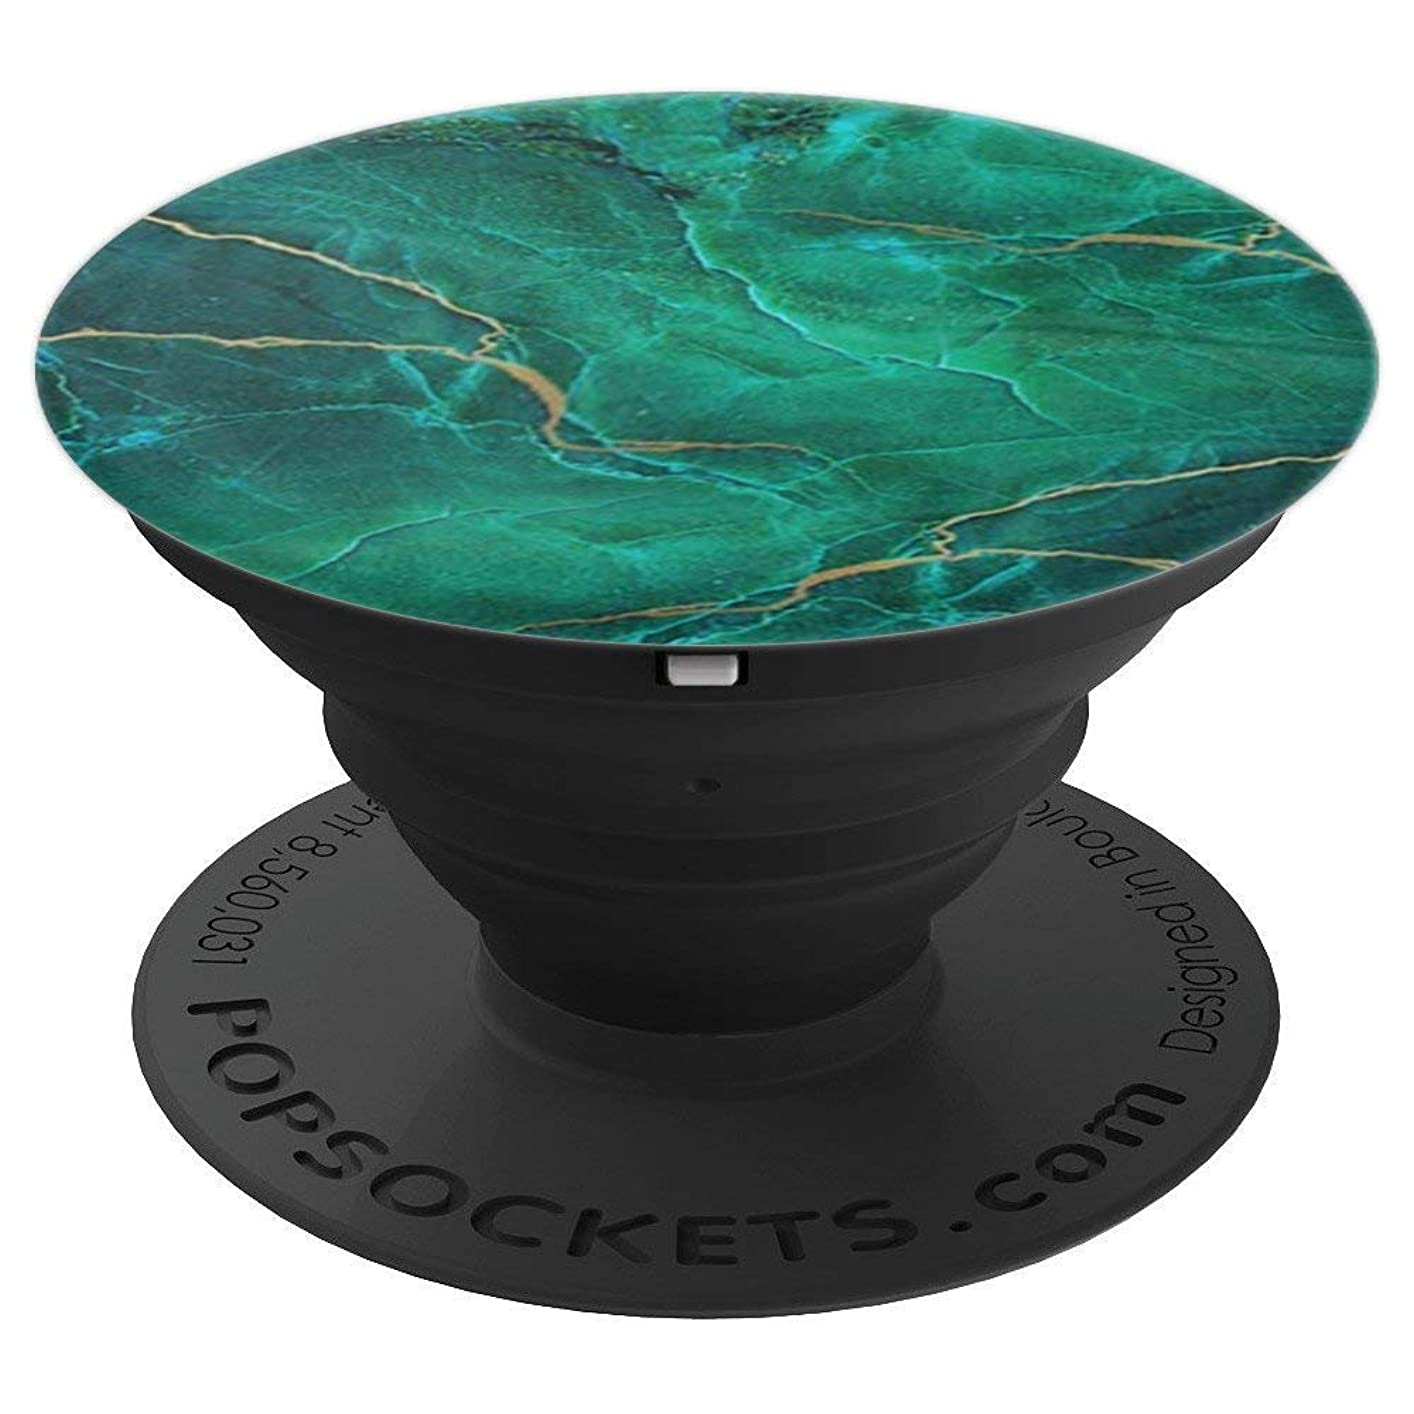 Pop Socket Marble Chic Green Gold Teal Marble Design - PopSockets Grip and Stand for Phones and Tablets